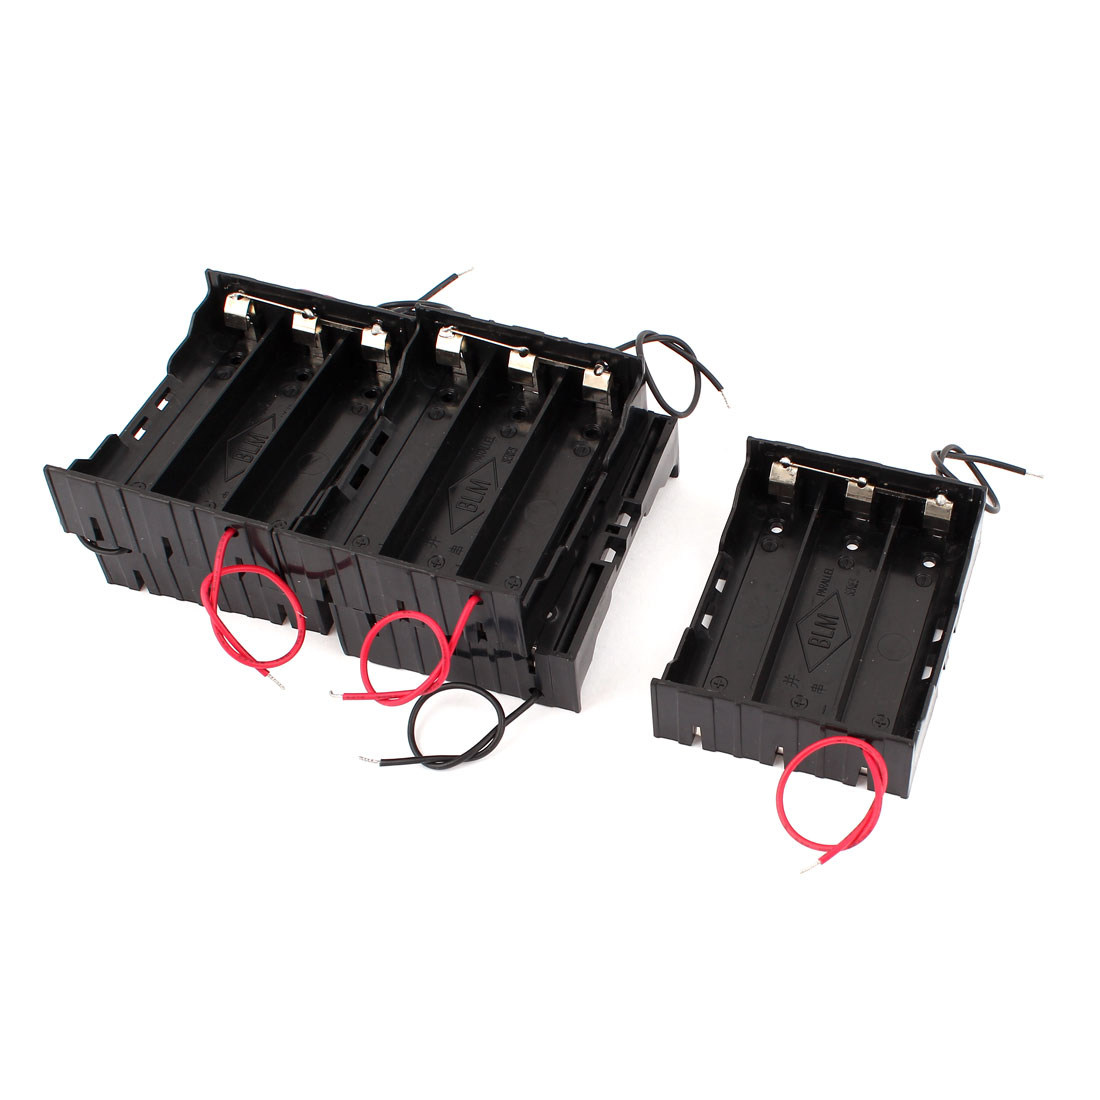 Unique Bargains 2 Wires Lead Plastic In Parallel 3x37v 18650 Series Battery Pack Wiring Holder Box Case 4 Pcs